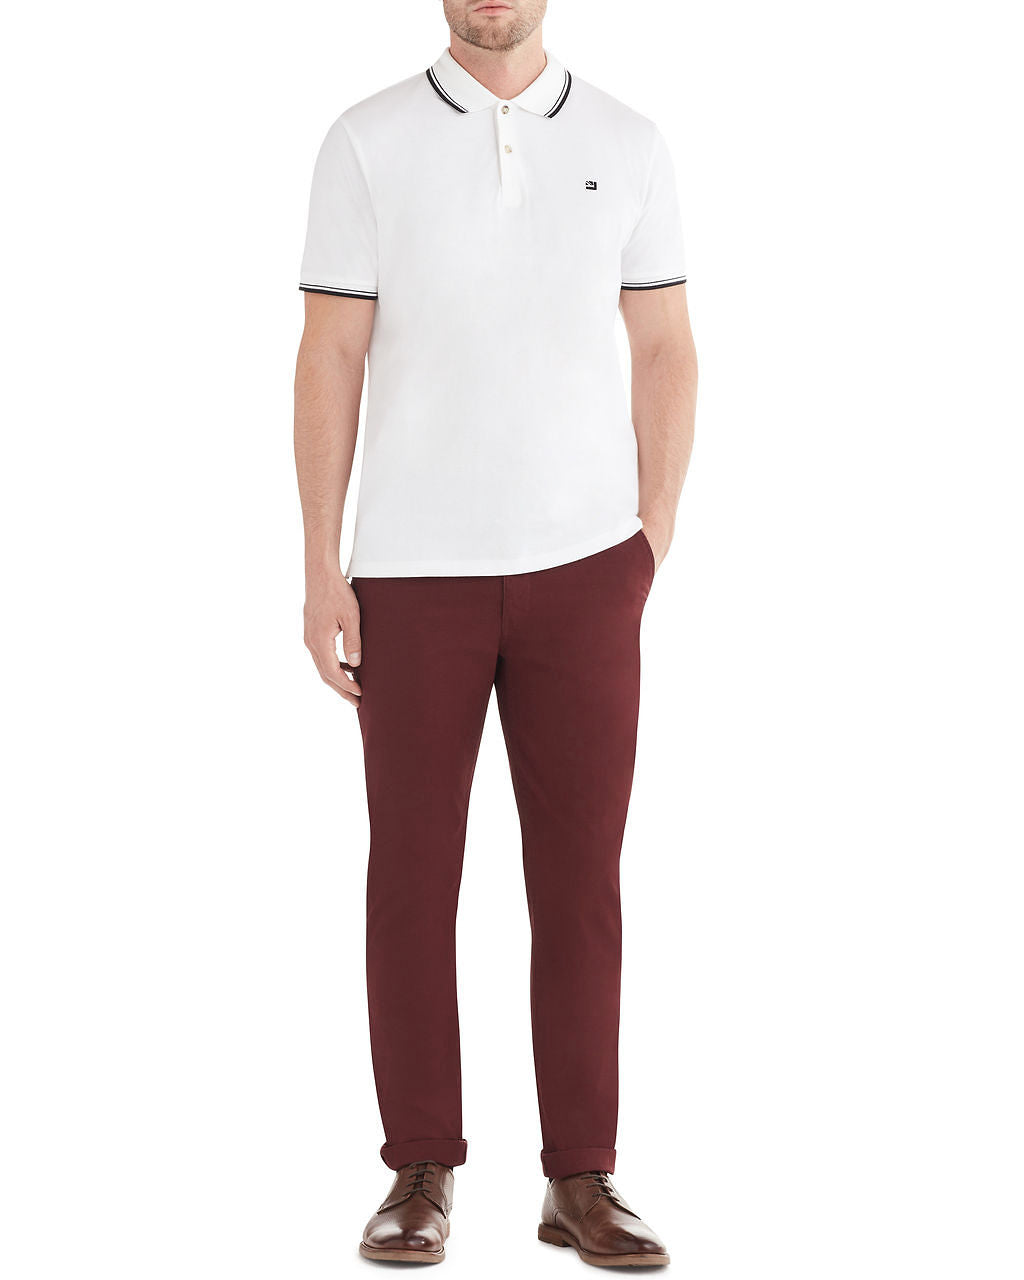 Slim Stretch Chino Pant - Wine